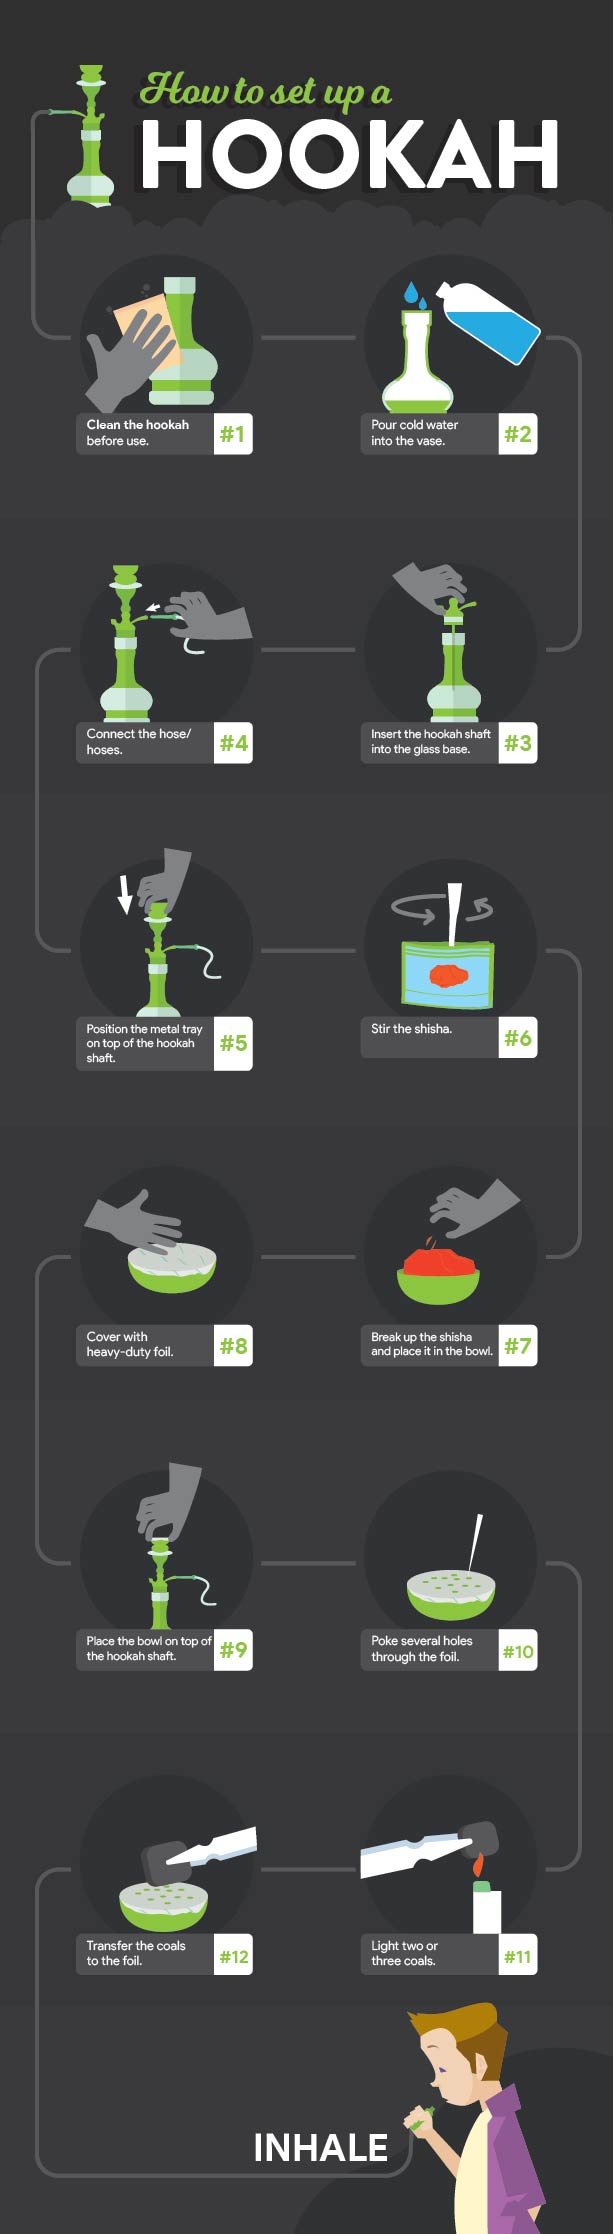 how to set up a hookah infographic